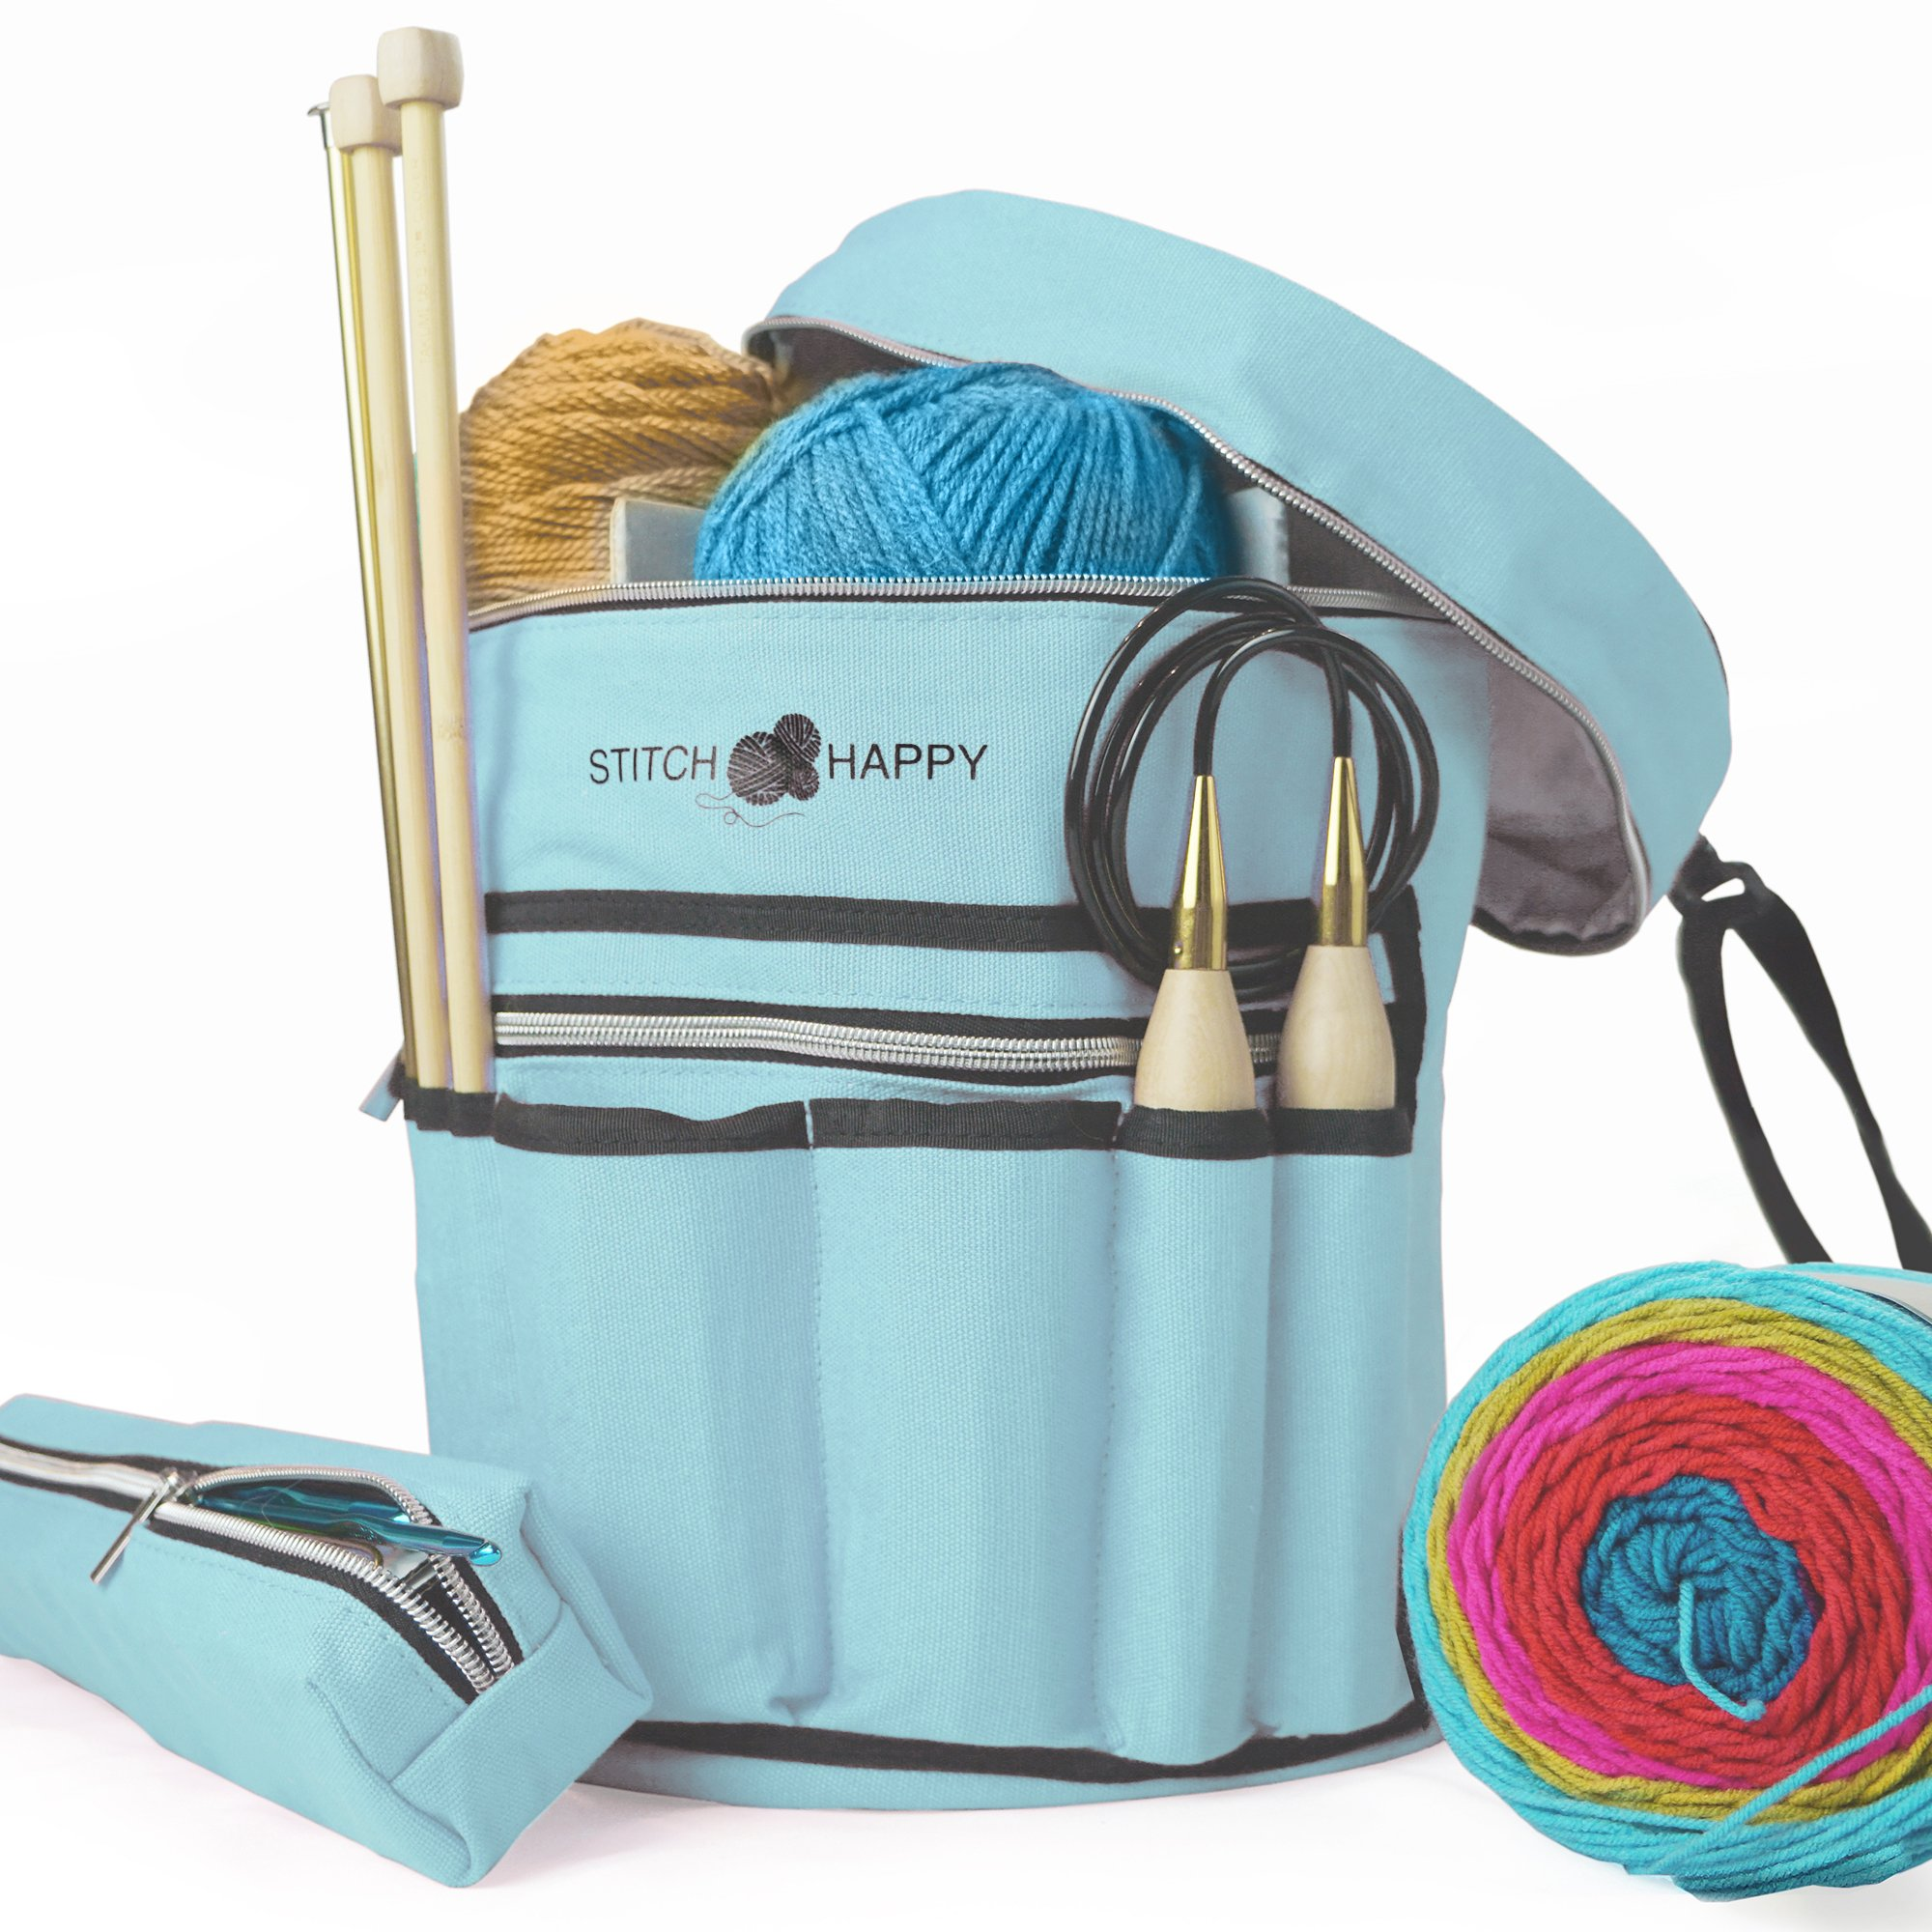 Knitting Bag - Yarn Organizer for All Your Knitting Accessories with Bonus Crochet Hook Case, 7 Pockets + Divider for Extra Storage of Projects & Supplies